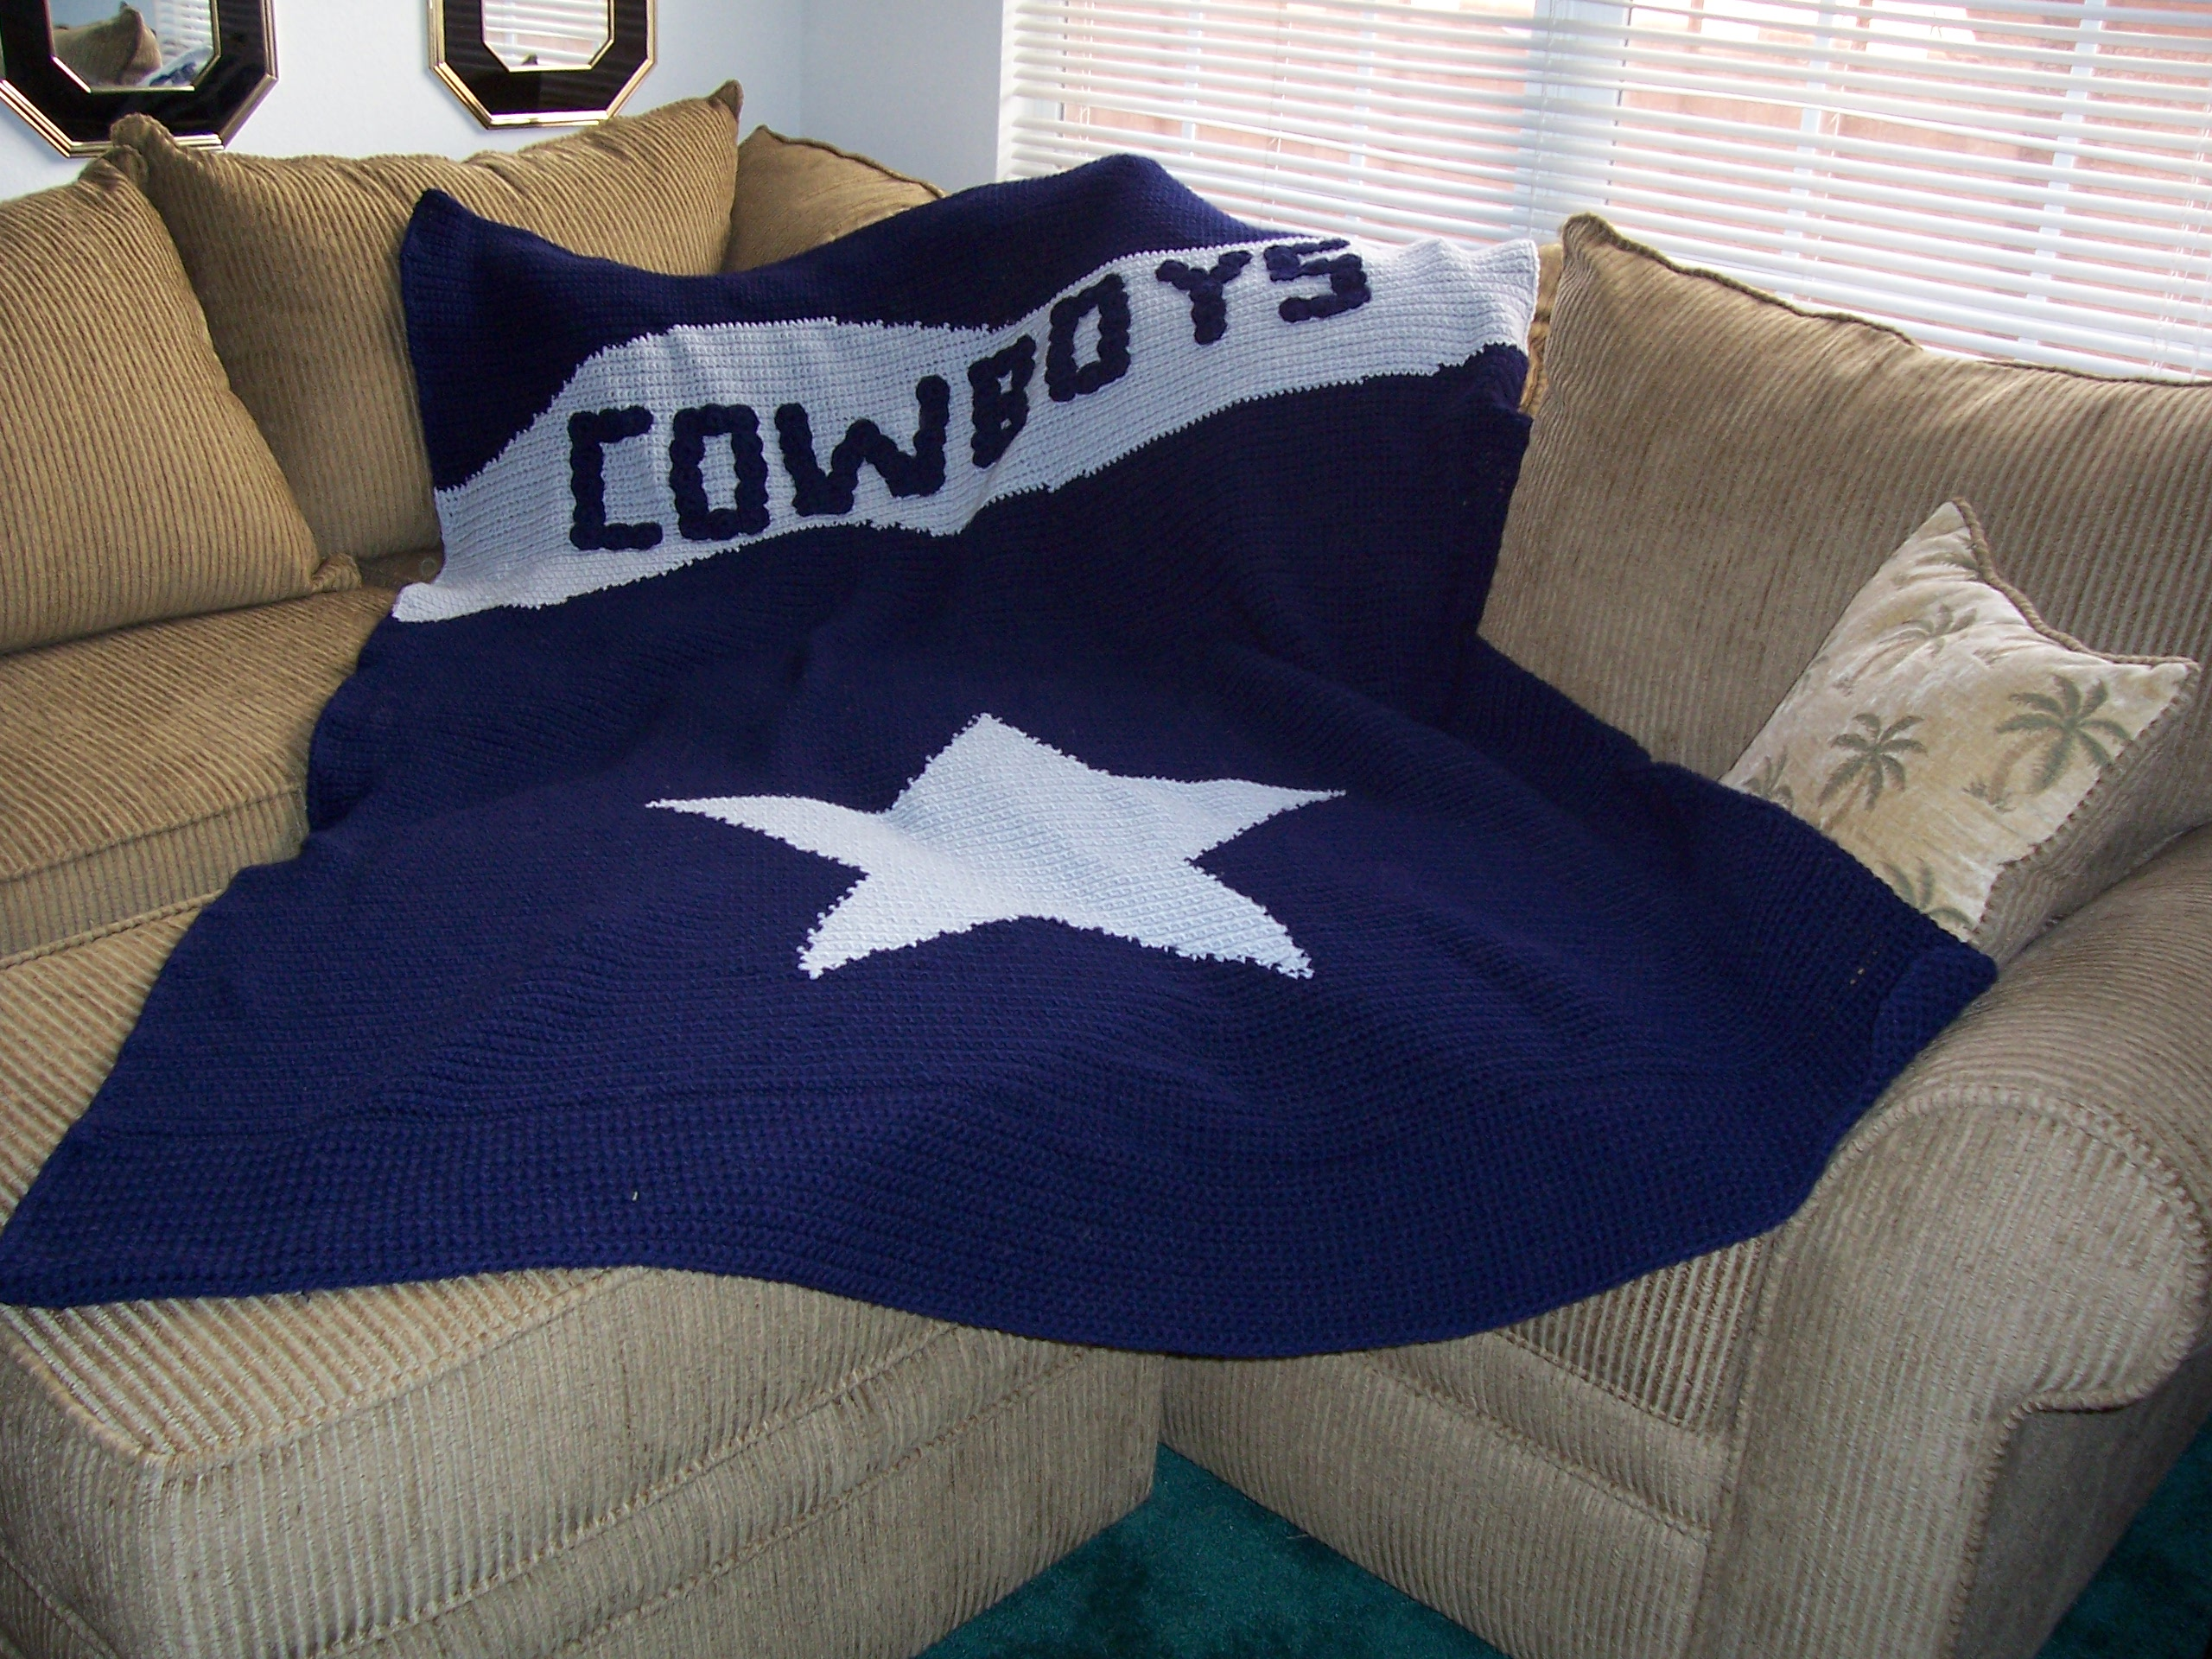 Does anyone know of a dallas cowboys crochet afgan pattern